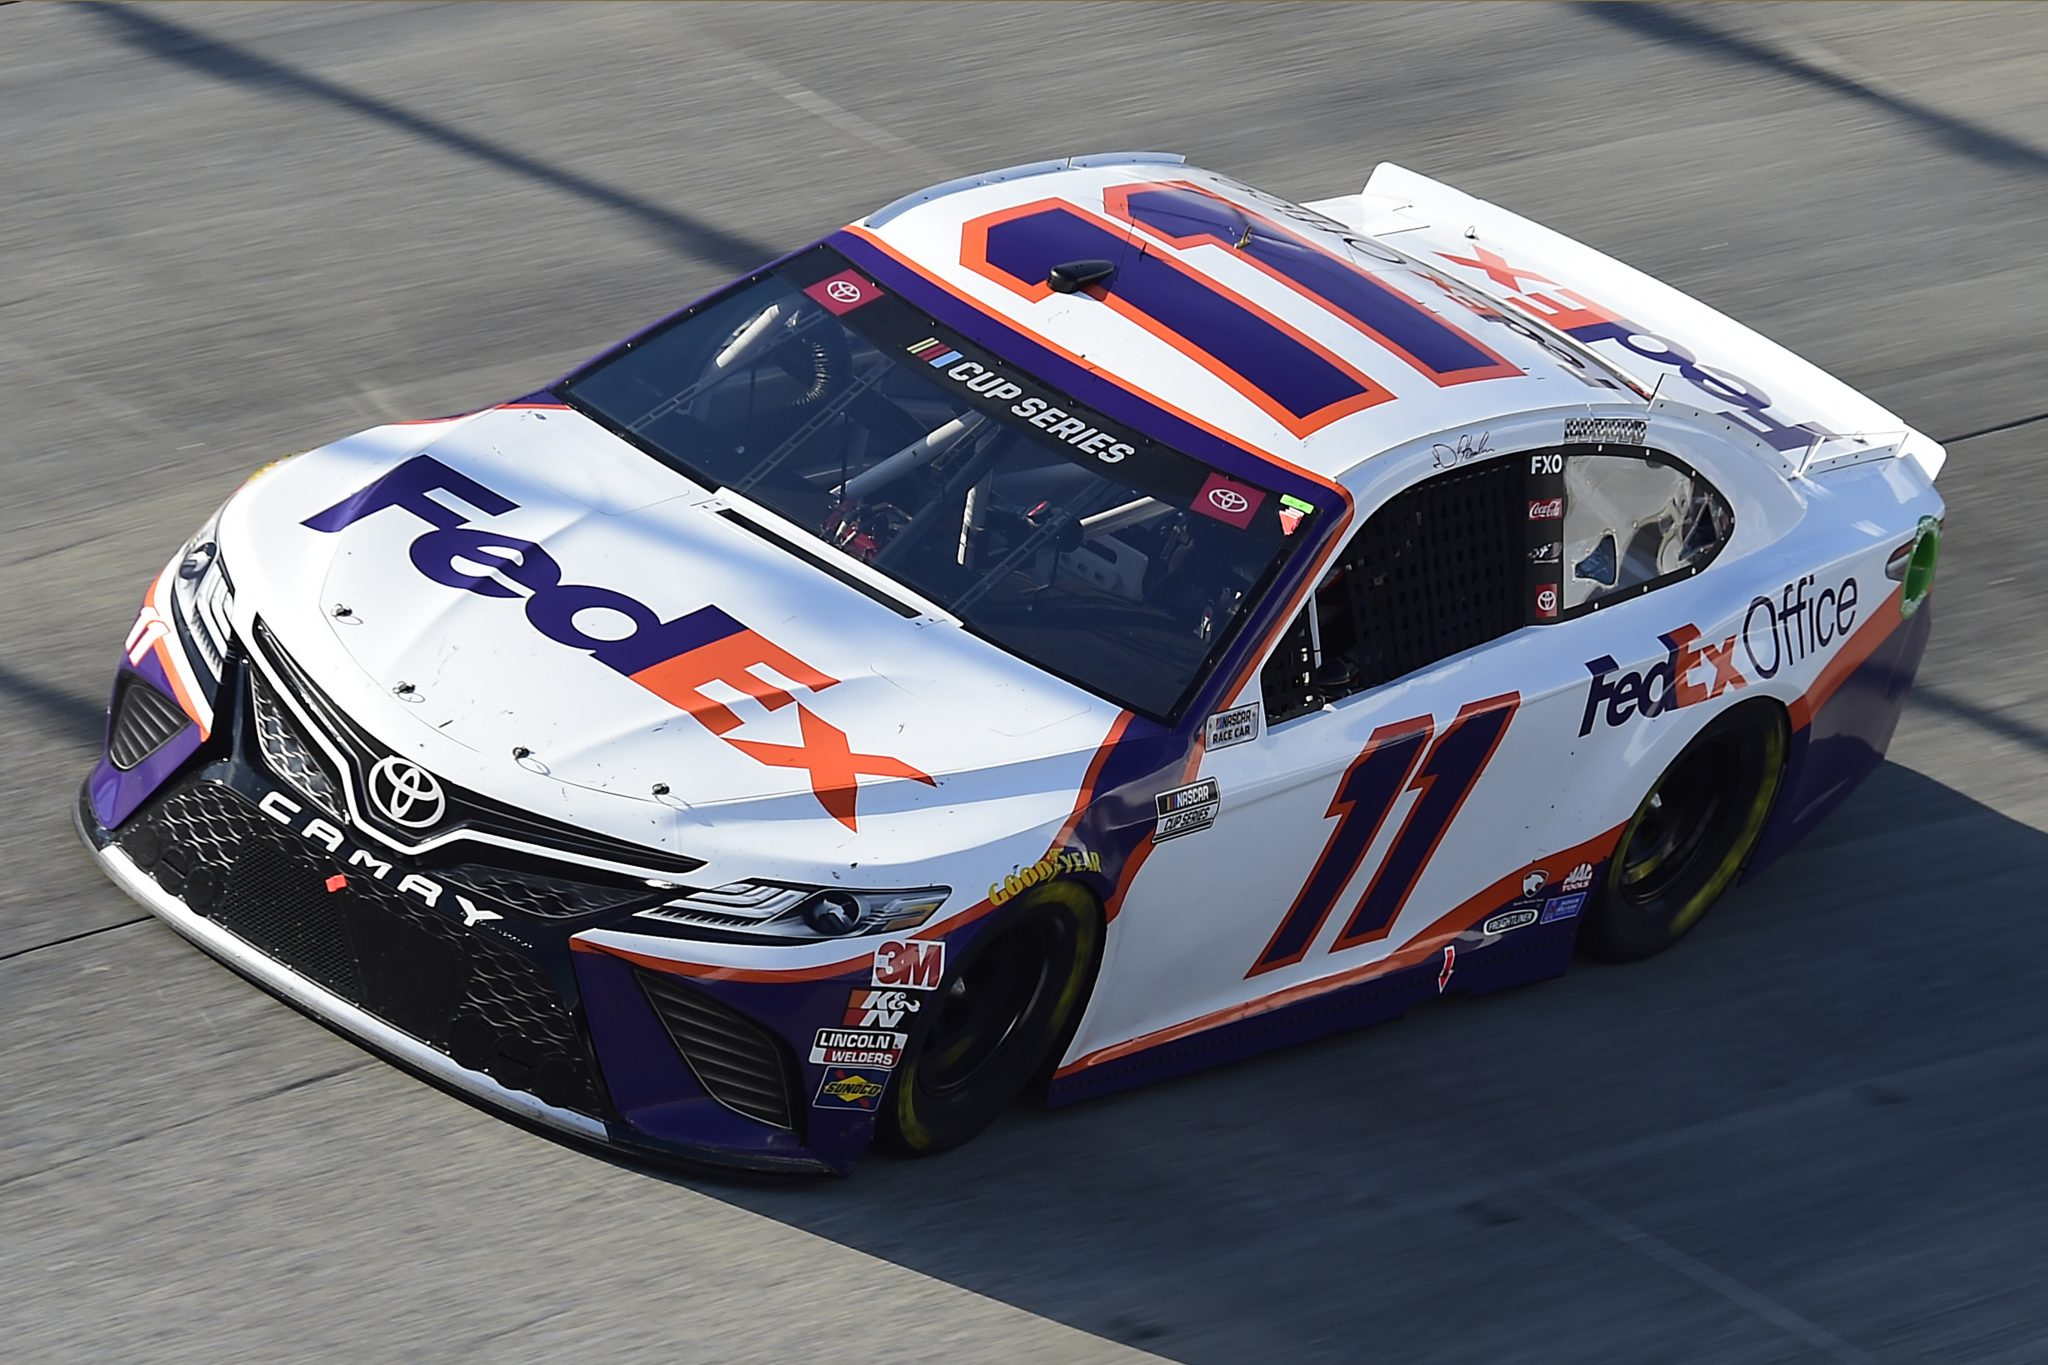 DOVER, DELAWARE - AUGUST 23: Denny Hamlin, driver of the #11 FedEx Office Toyota, drives during the NASCAR Cup Series Drydene 311 at Dover International Speedway on August 23, 2020 in Dover, Delaware. (Photo by Jared C. Tilton/Getty Images) | Getty Images